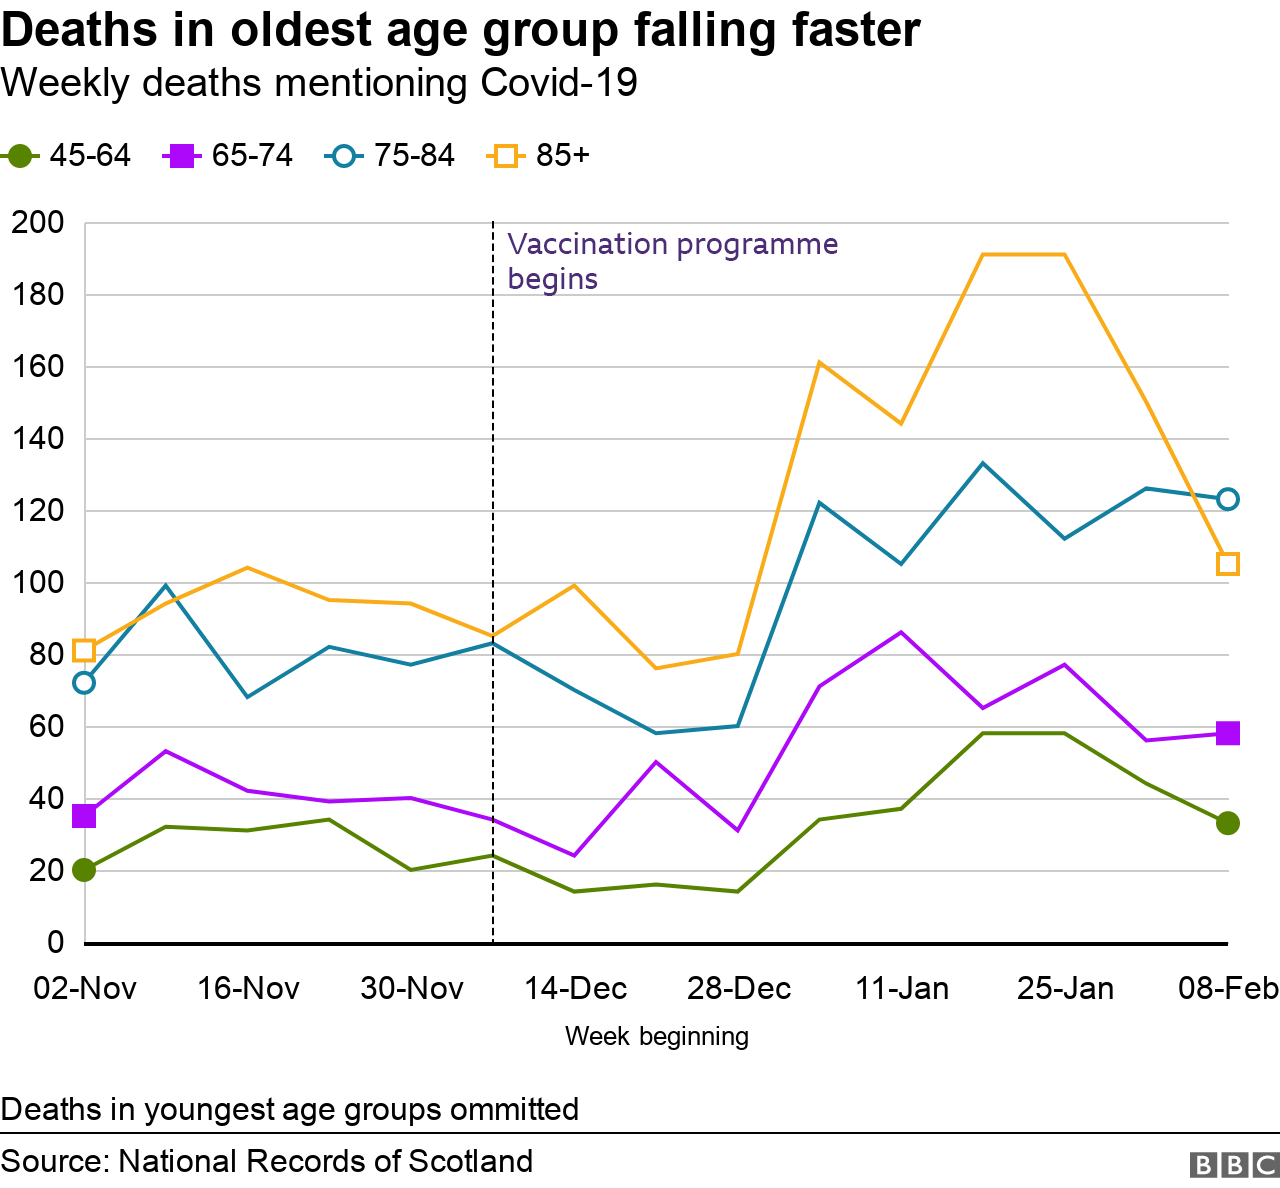 Age group deaths